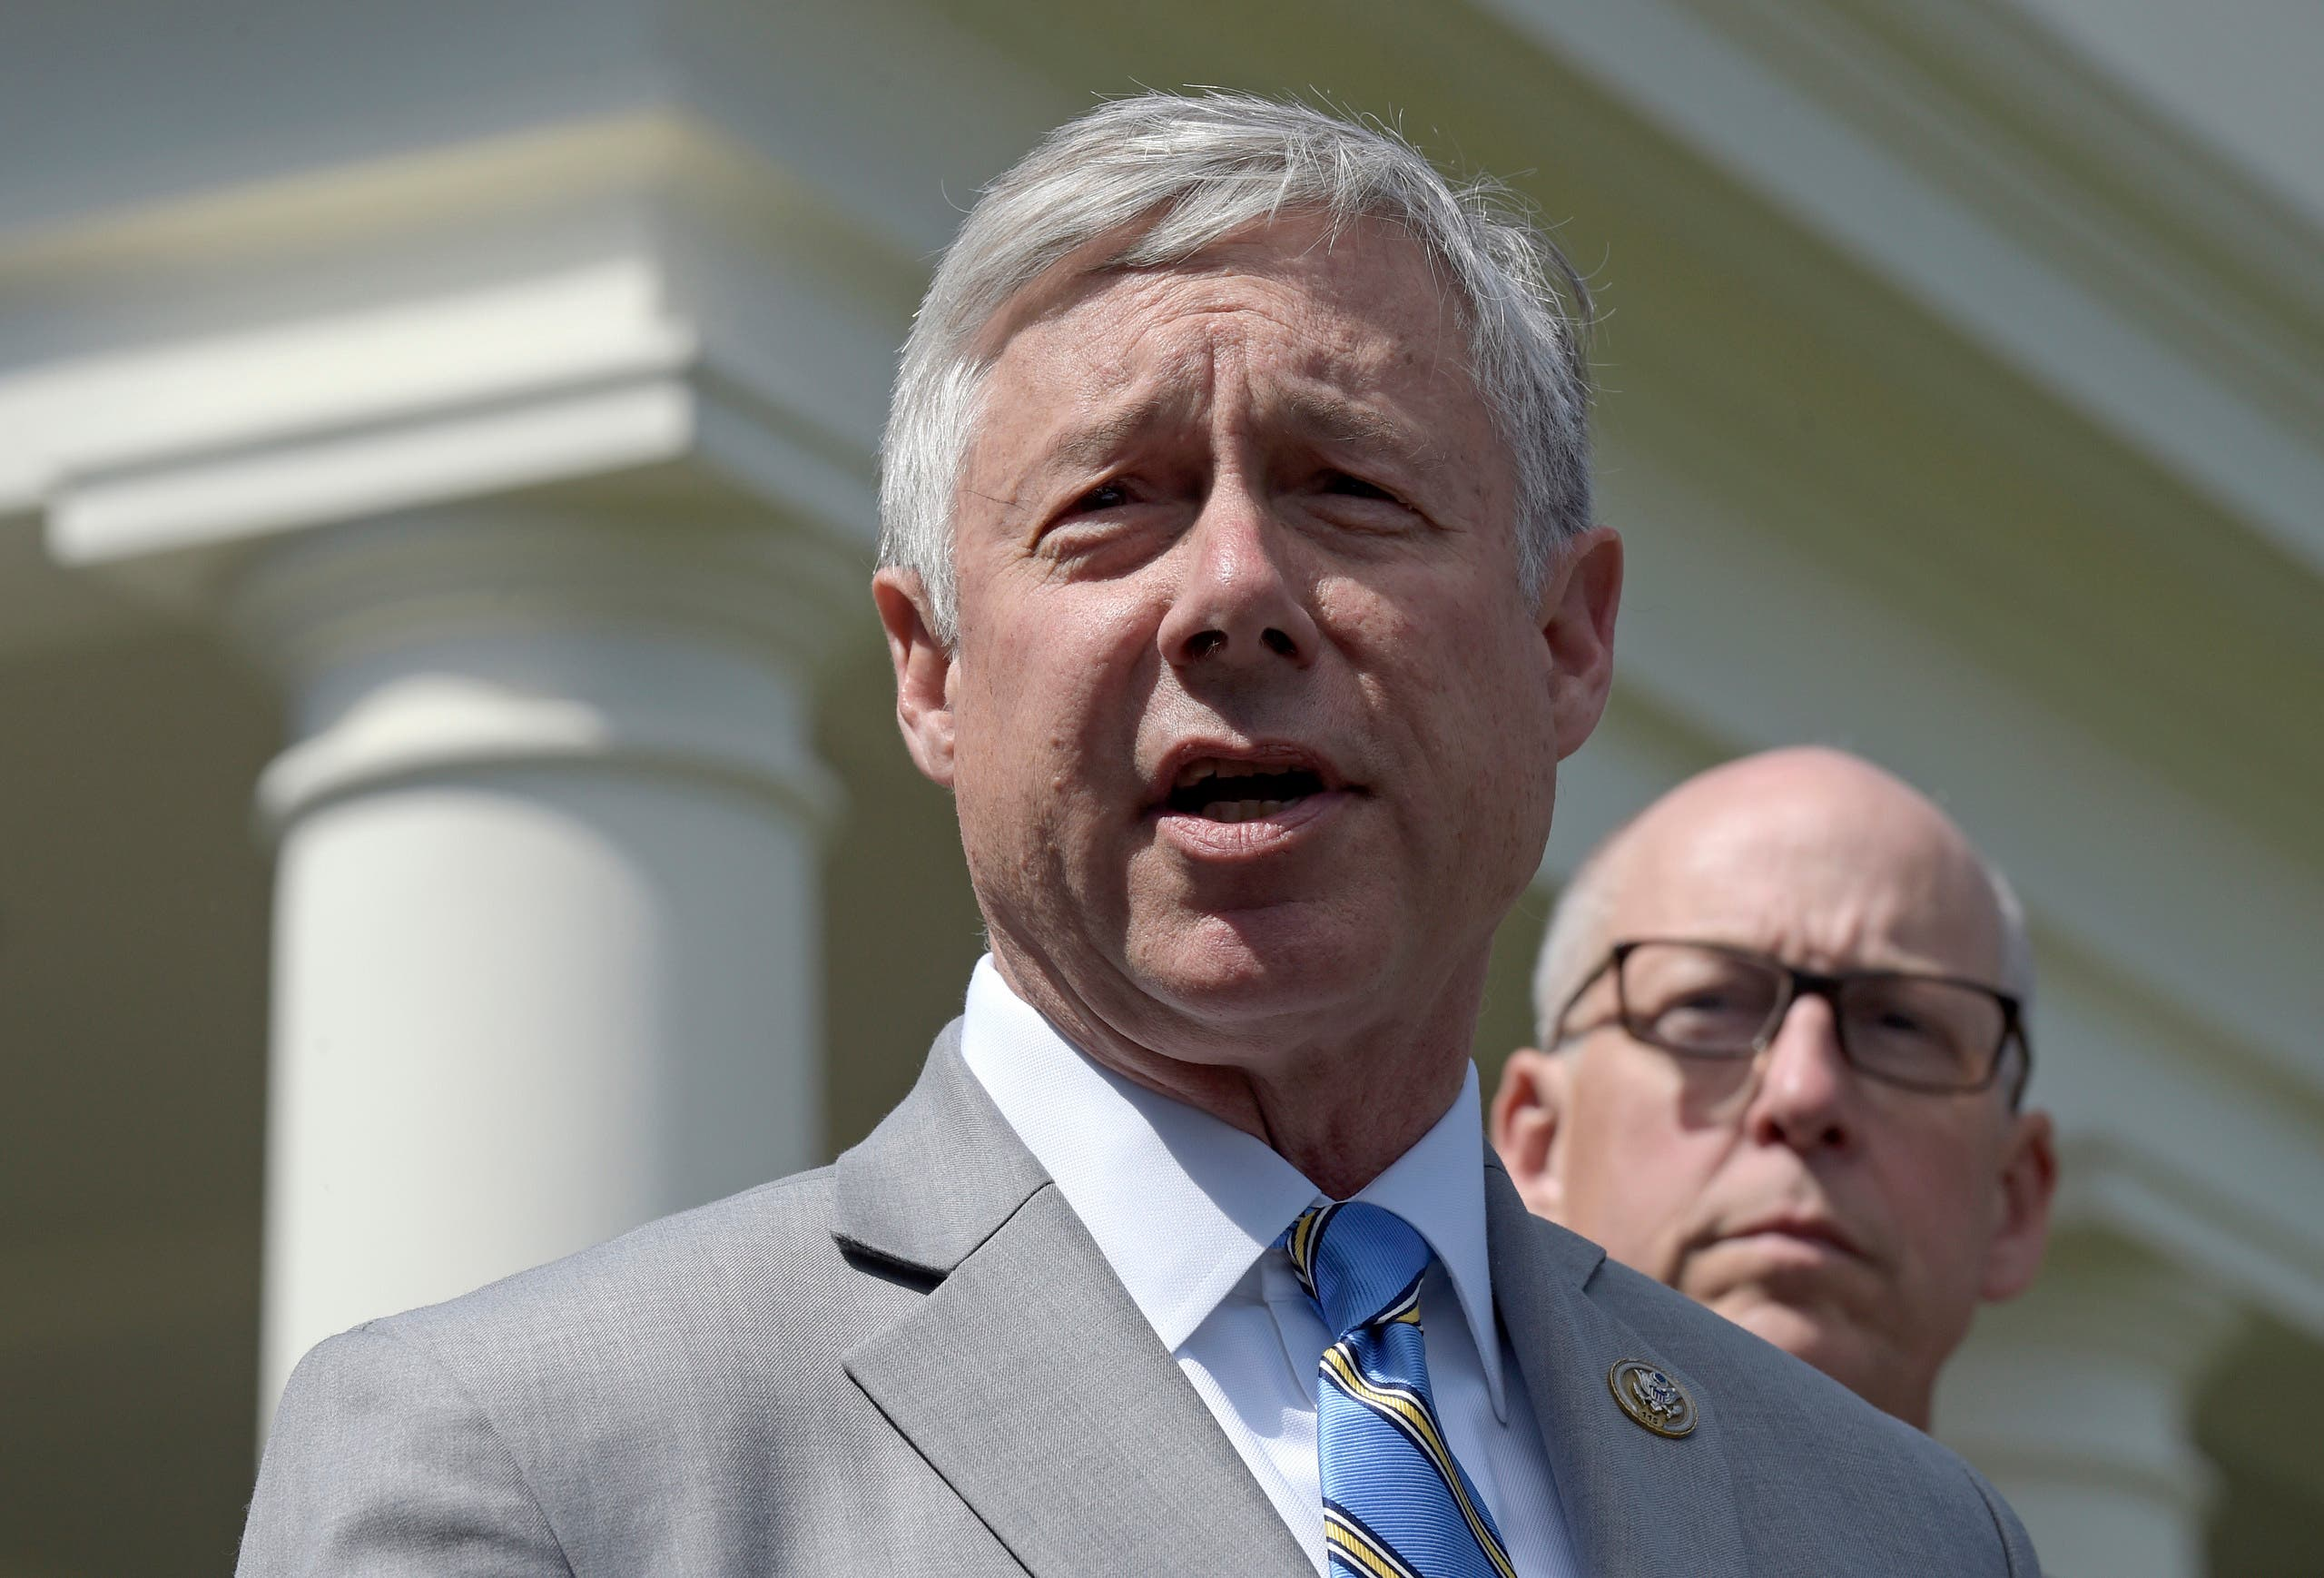 Rep. Fred Upton, R-Mich., left, speaks to reporters outside the White House in Washington. (File photo: AP)